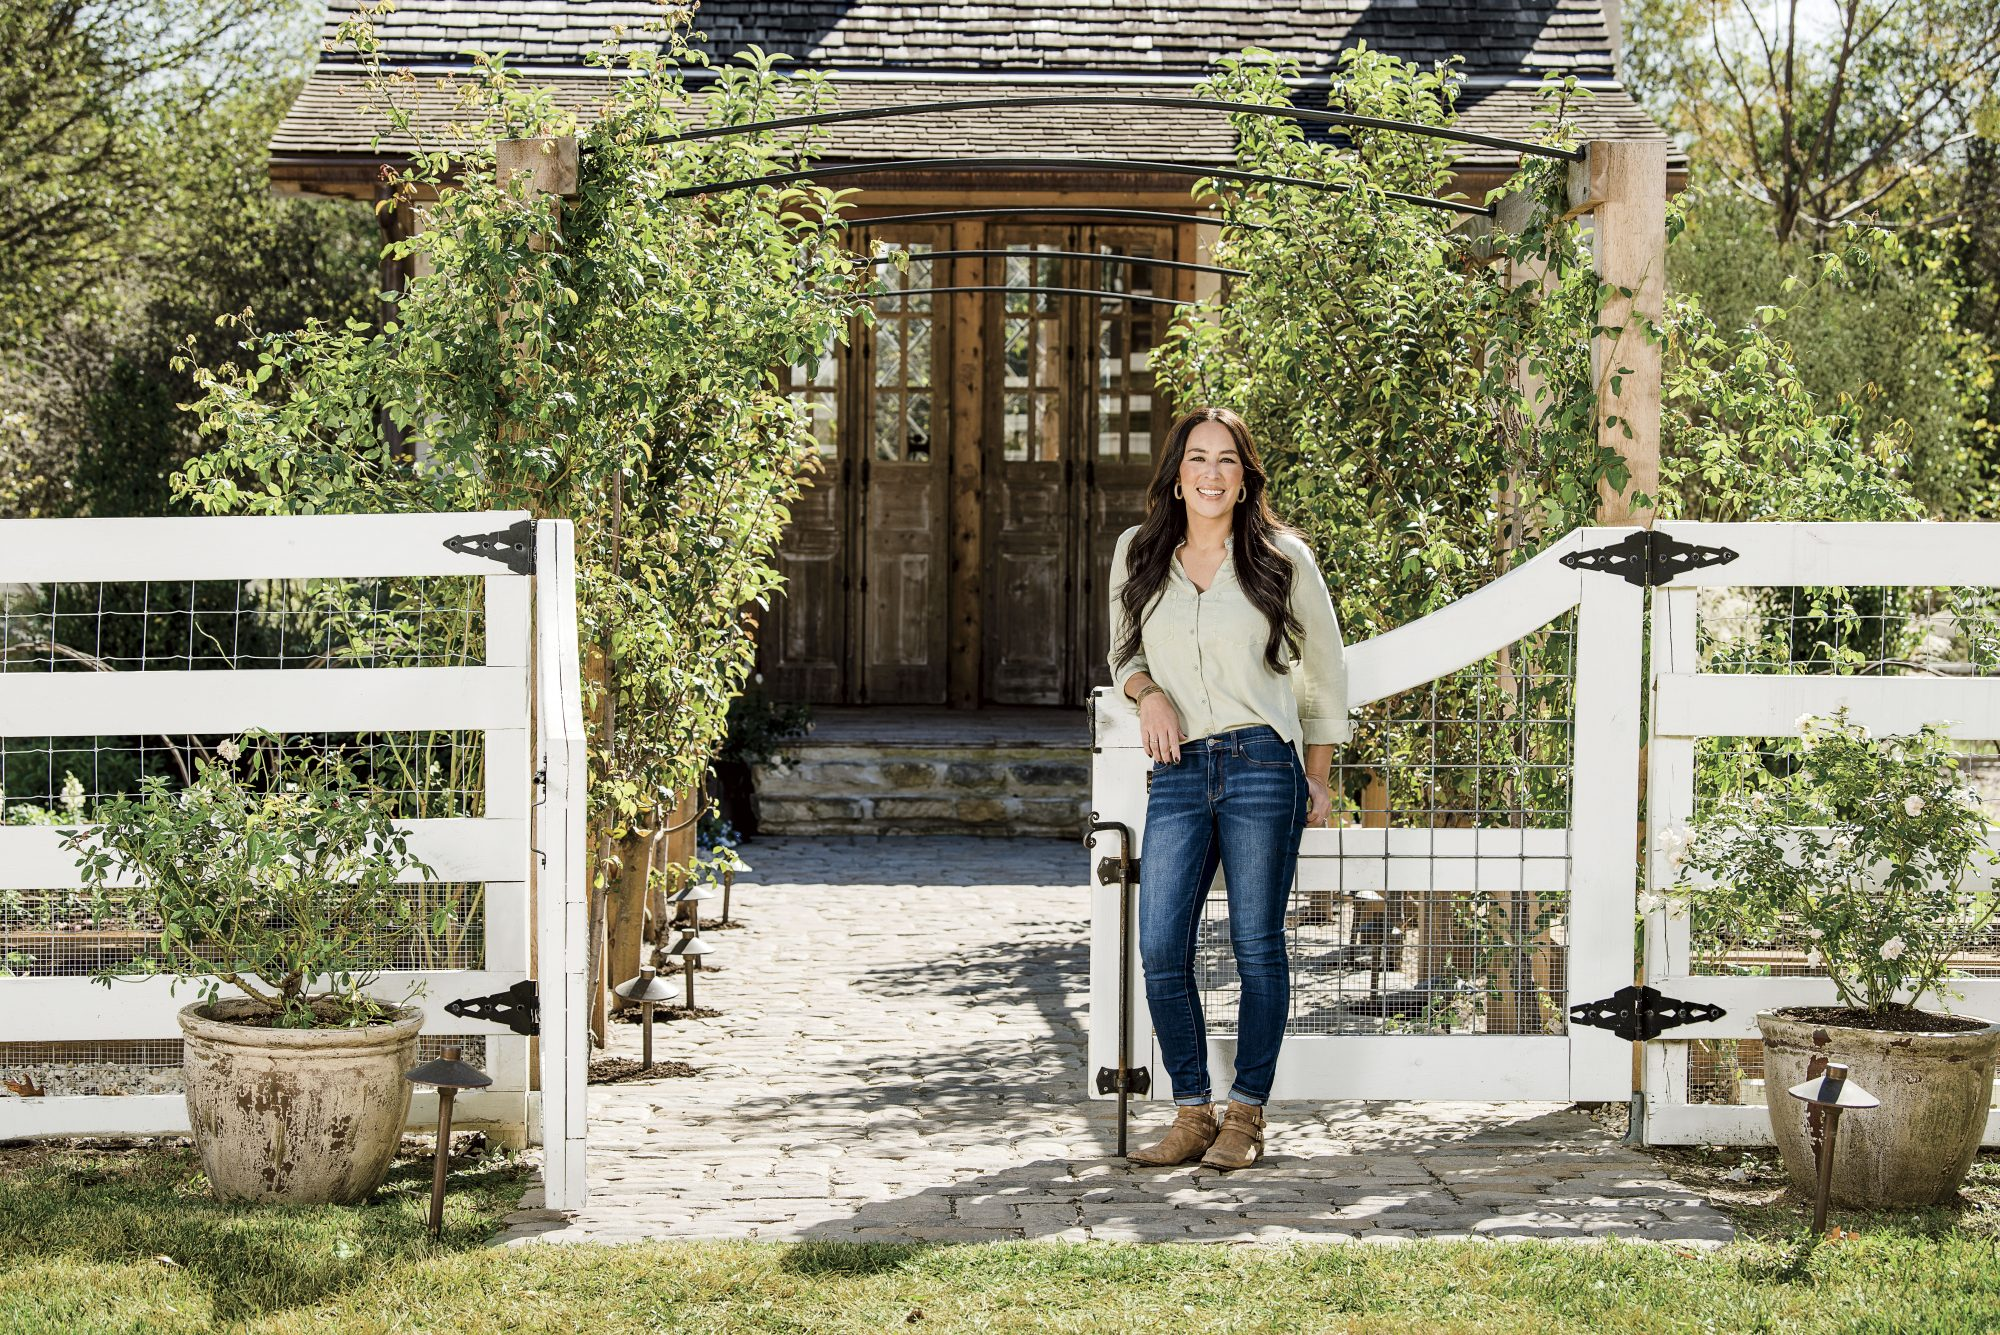 Joanna Gaines in front of Garden Shed